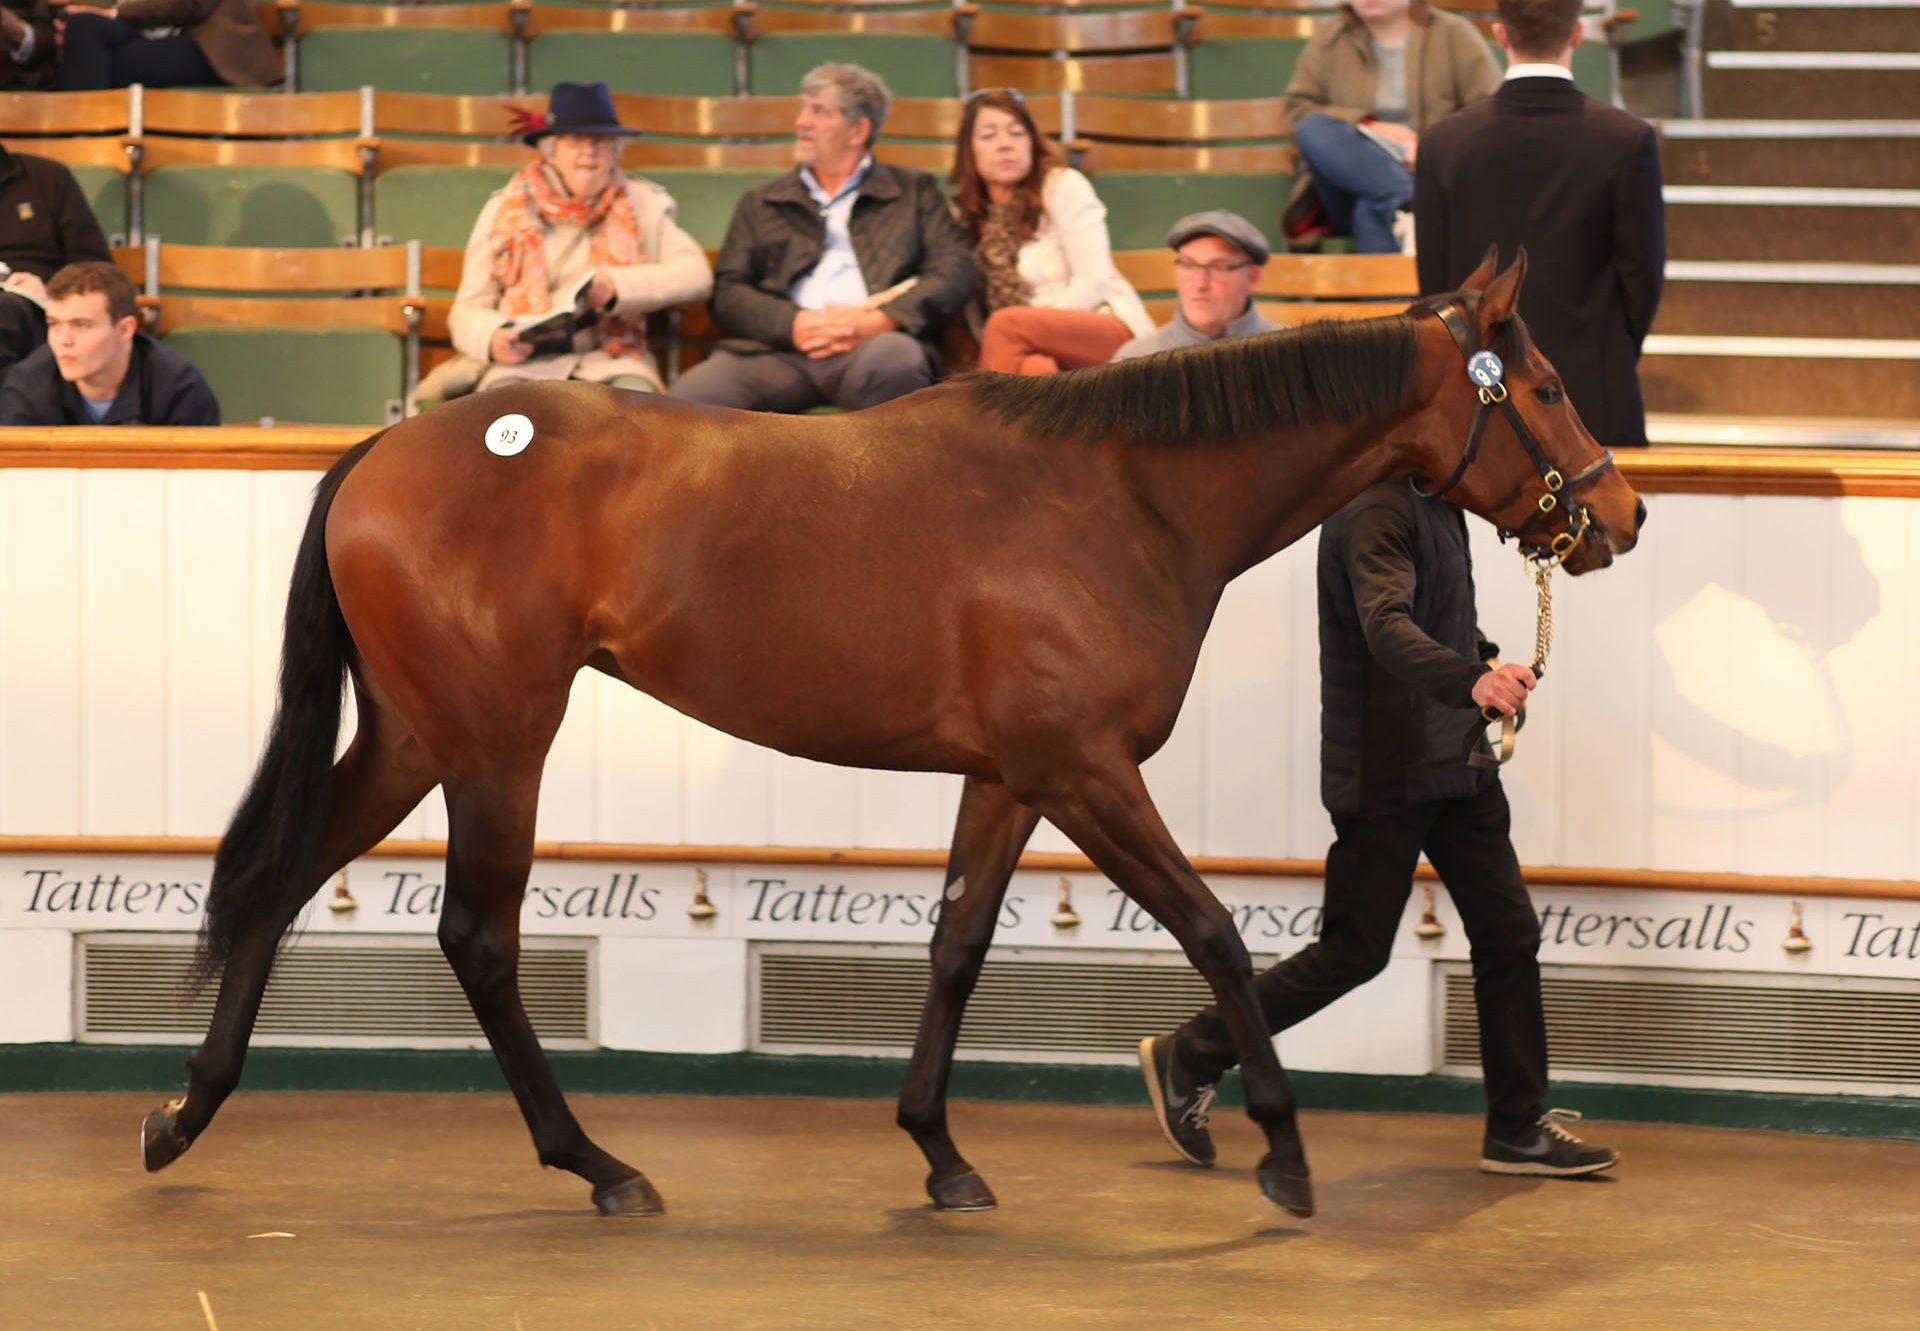 Lot 93 Competitive Edge ex Hug and Kiss filly sold for 280,000gns at the Craven Breeze Up Sale